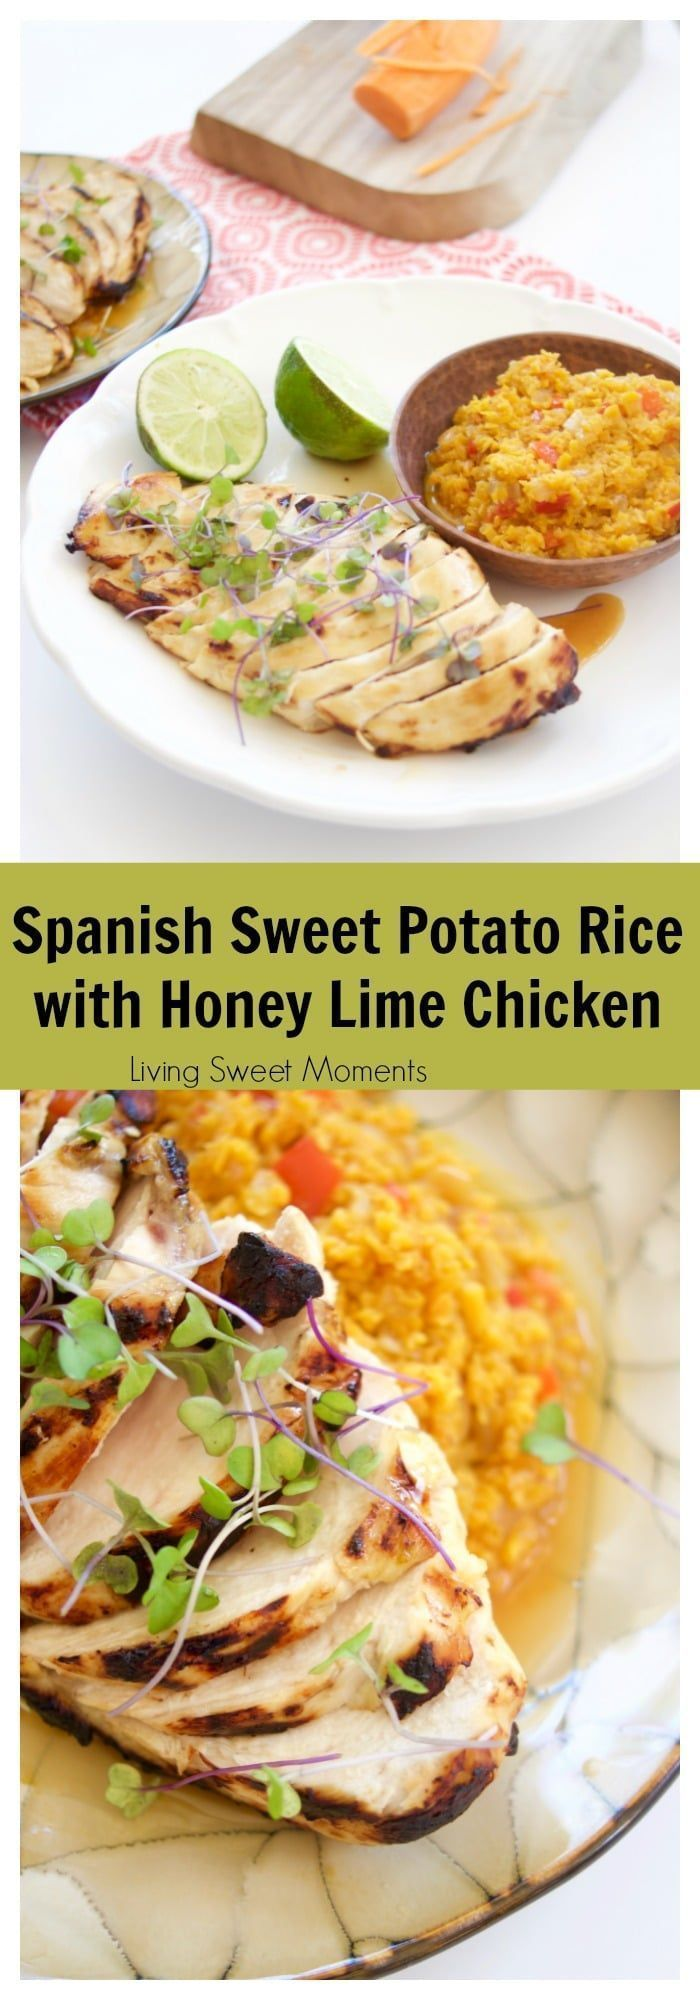 Spanish Sweet Potato Rice with Honey Lime Chicken #honeylimechicken Spanish Sweet Potato Rice with Honey Lime Chicken (Passover, GF) via @Livingsmoments #honeylimechicken Spanish Sweet Potato Rice with Honey Lime Chicken #honeylimechicken Spanish Sweet Potato Rice with Honey Lime Chicken (Passover, GF) via @Livingsmoments #honeylimechicken Spanish Sweet Potato Rice with Honey Lime Chicken #honeylimechicken Spanish Sweet Potato Rice with Honey Lime Chicken (Passover, GF) via @Livingsmoments #hone #honeylimechicken